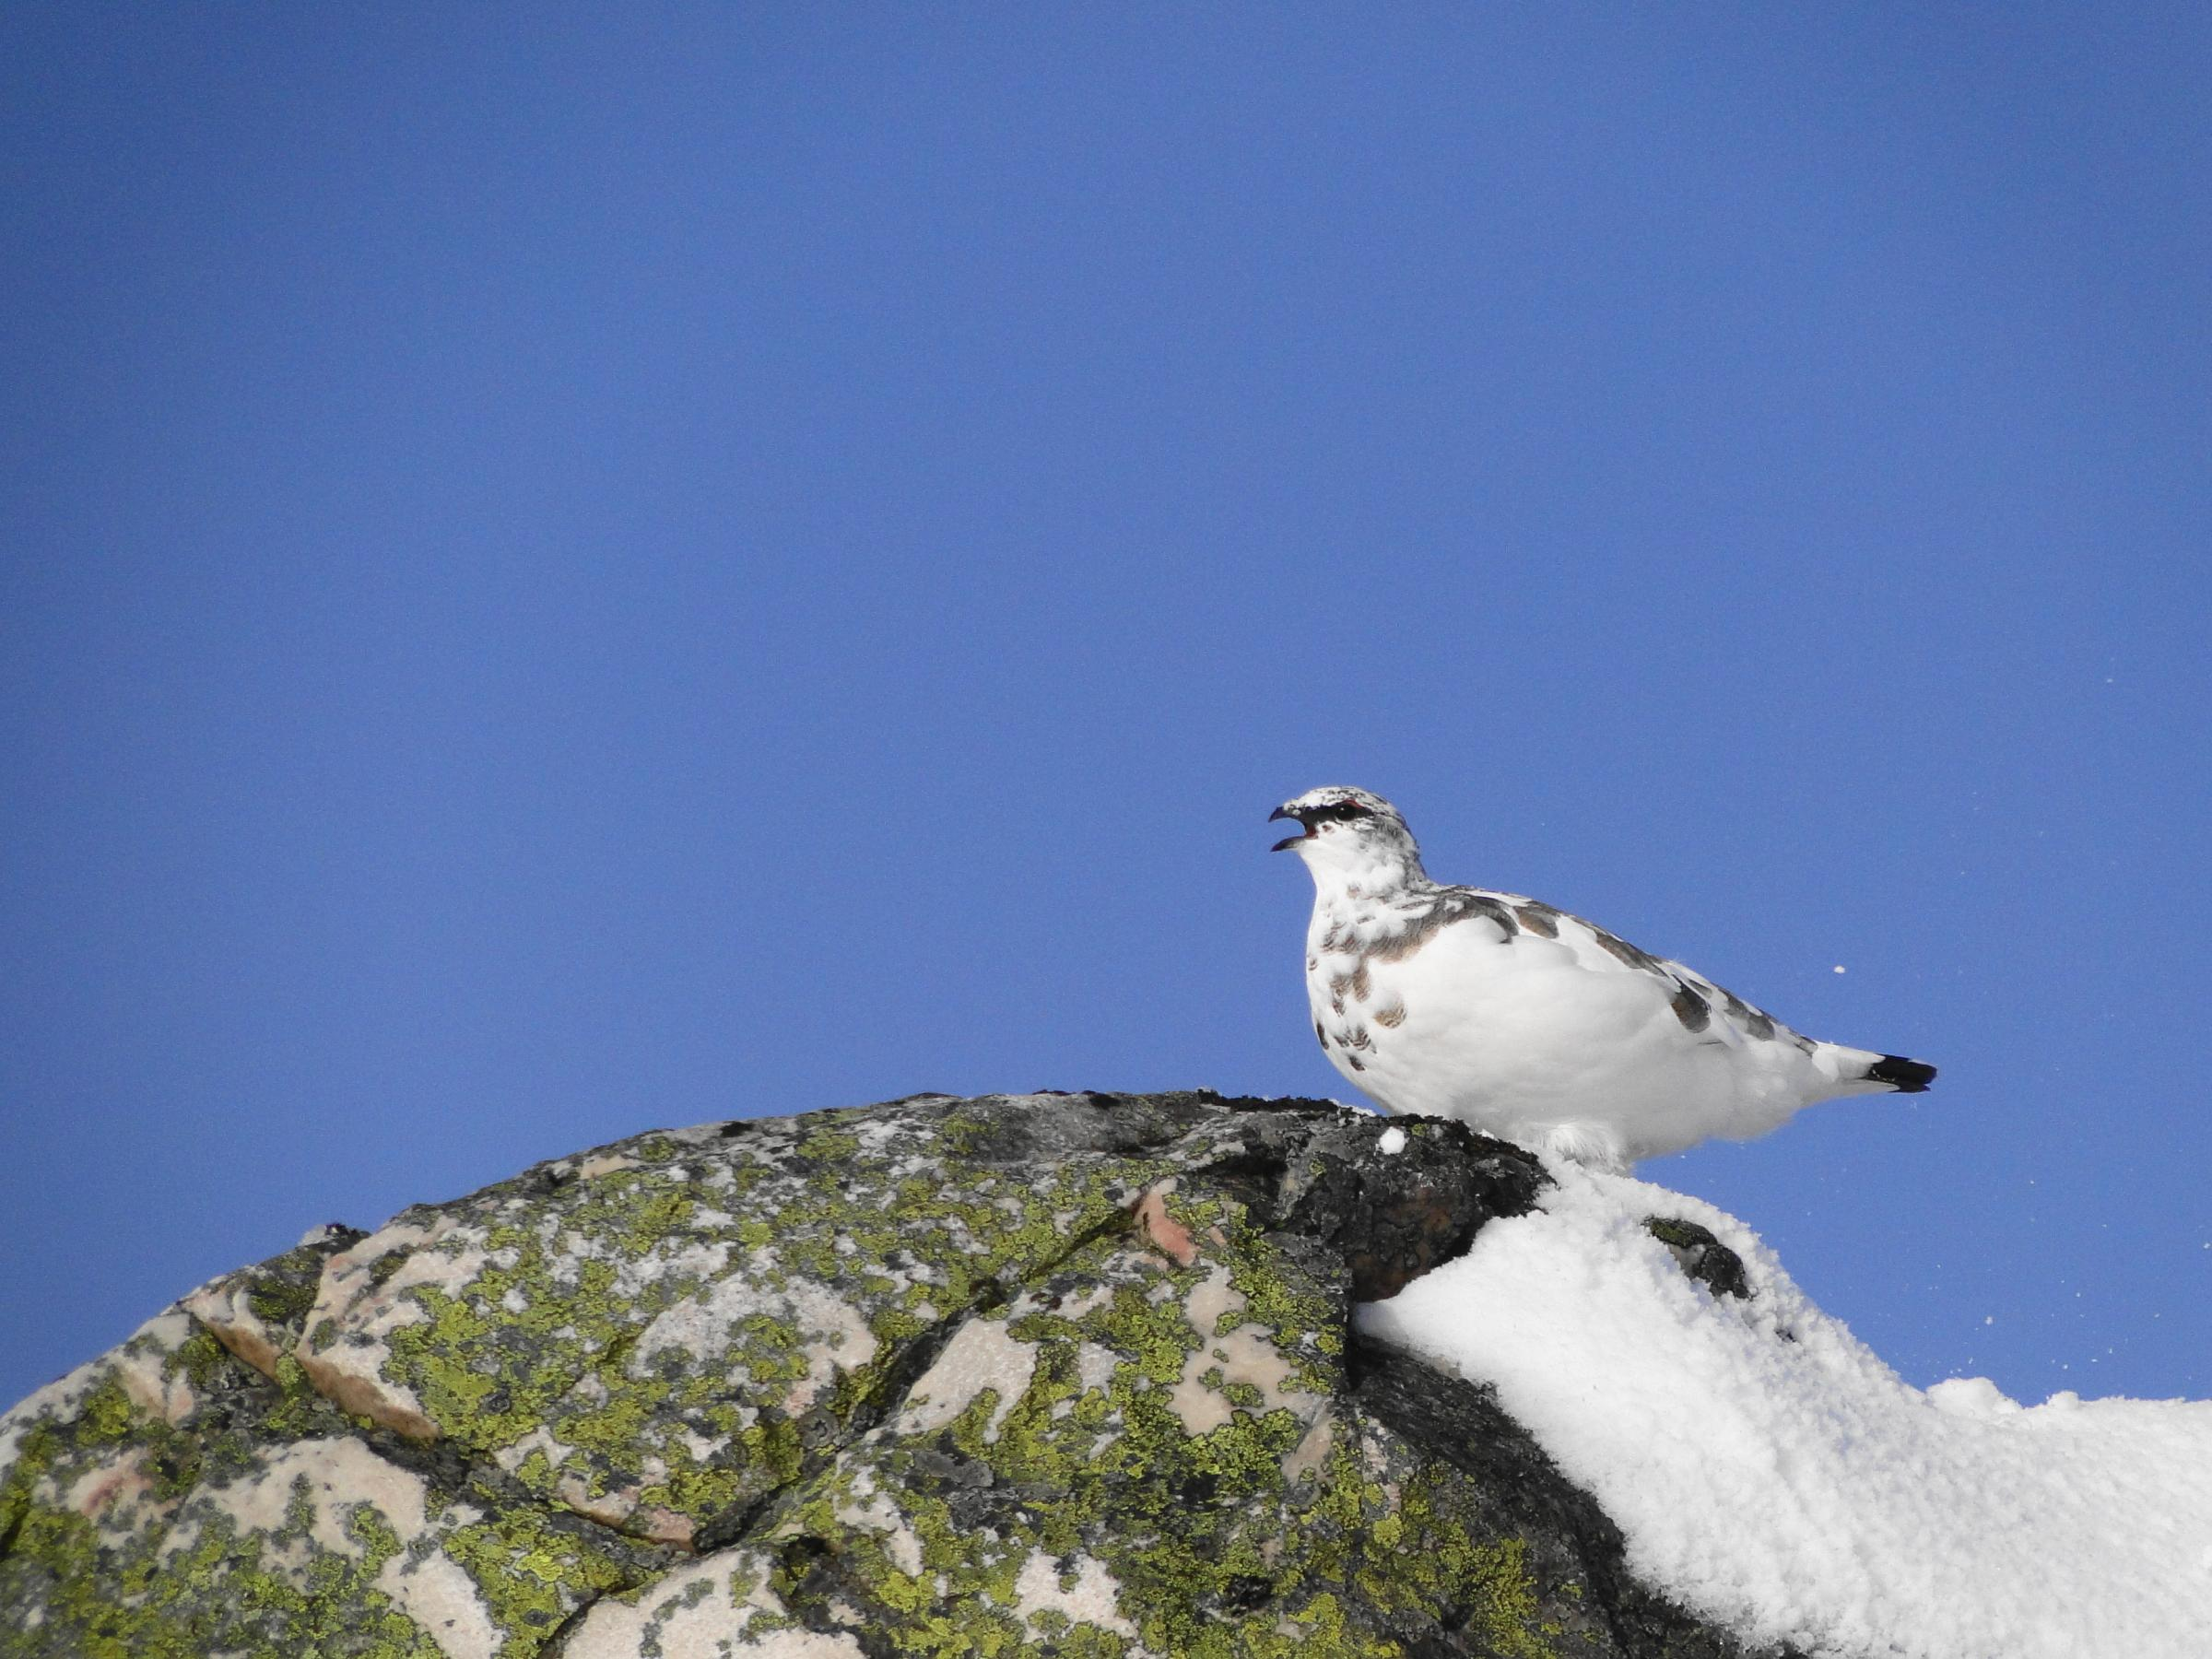 WE are taking flight with our first picture of the week of the New Year.This shot of a Ptarmigan in the Scottish highlands was taken by Ian Jones and it was sent in via e-mail.The Ptarmigan is a plump gamebird and it is exclusively found in the Scottish H